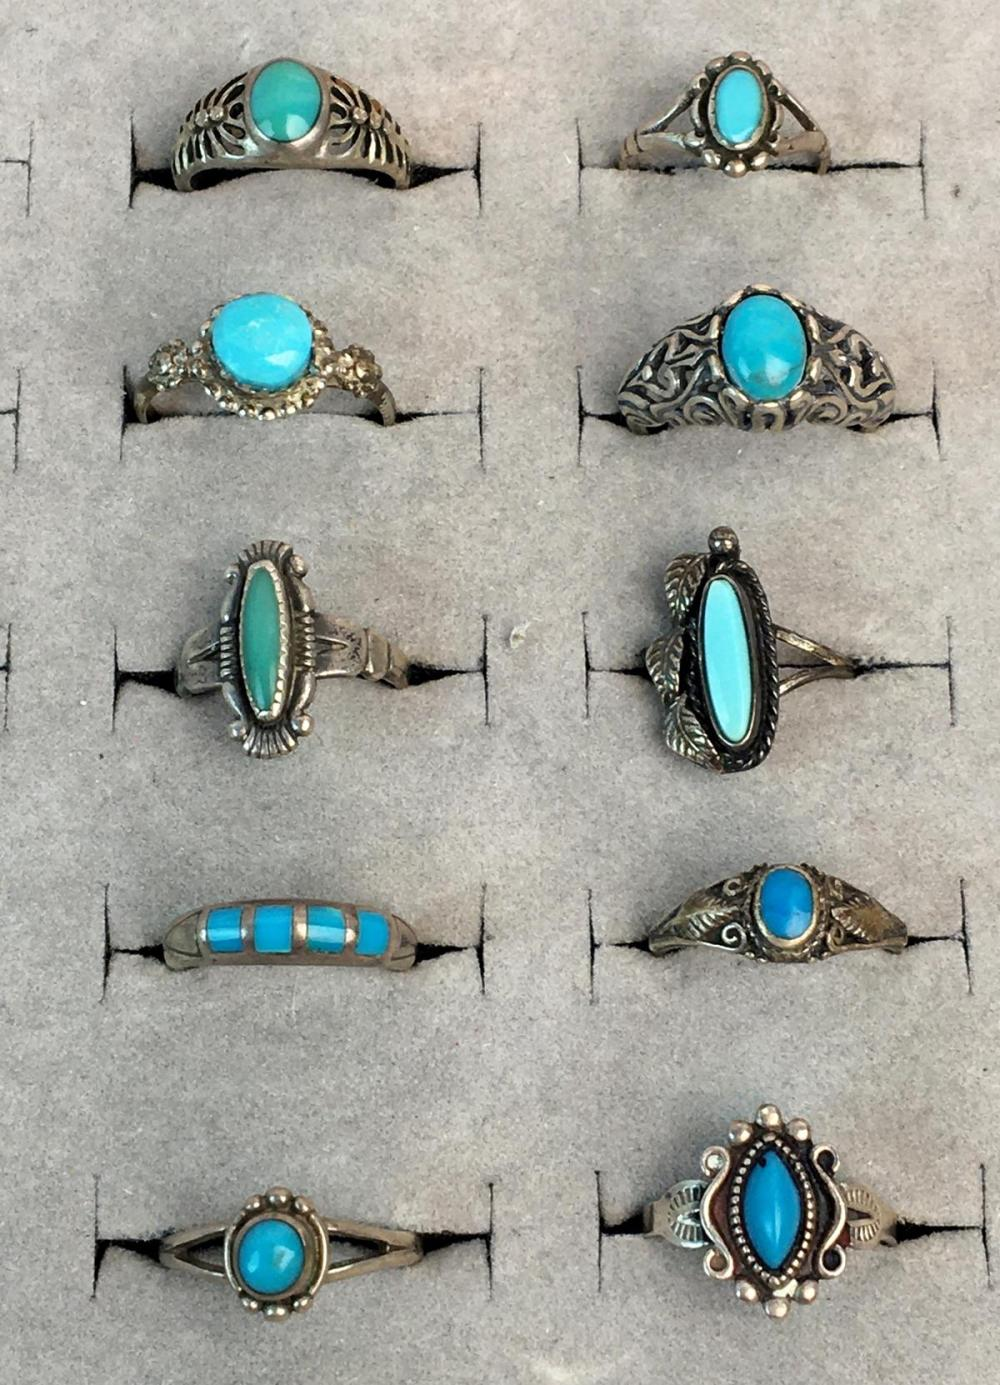 Vintage Lot of 10 Sterling Silver & Turquoise Rings